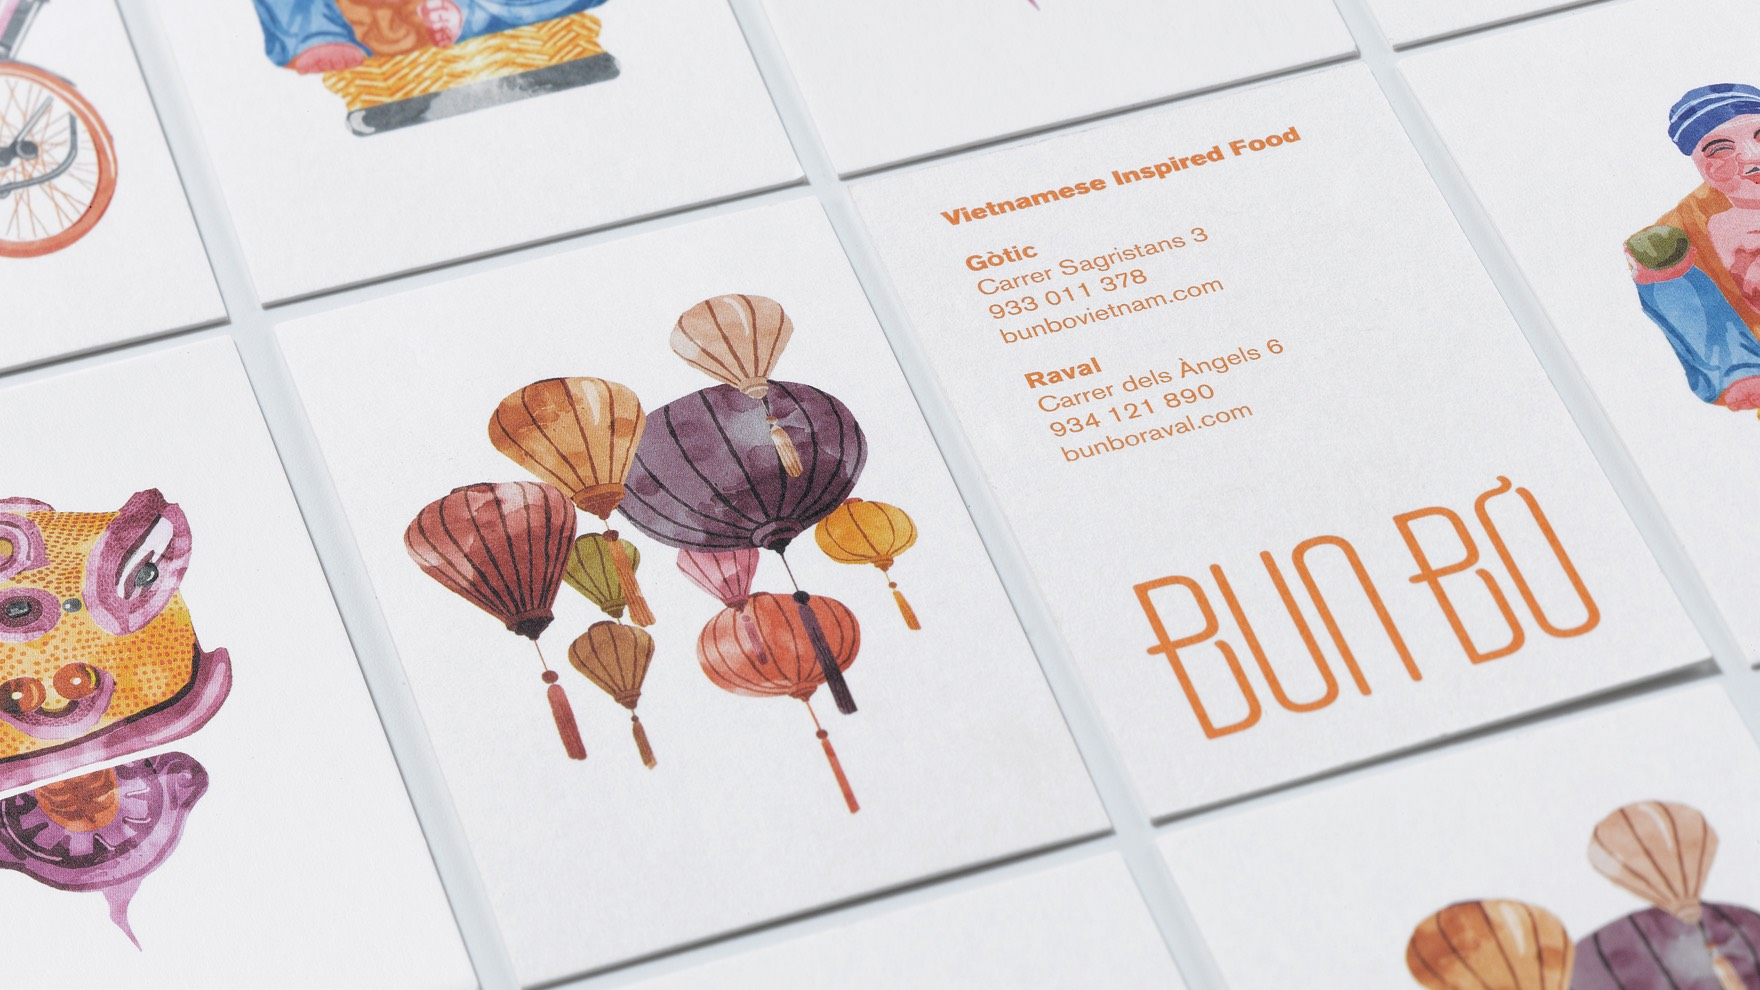 BUN BÒ / CORPORATE IDENTITY / BRANDING